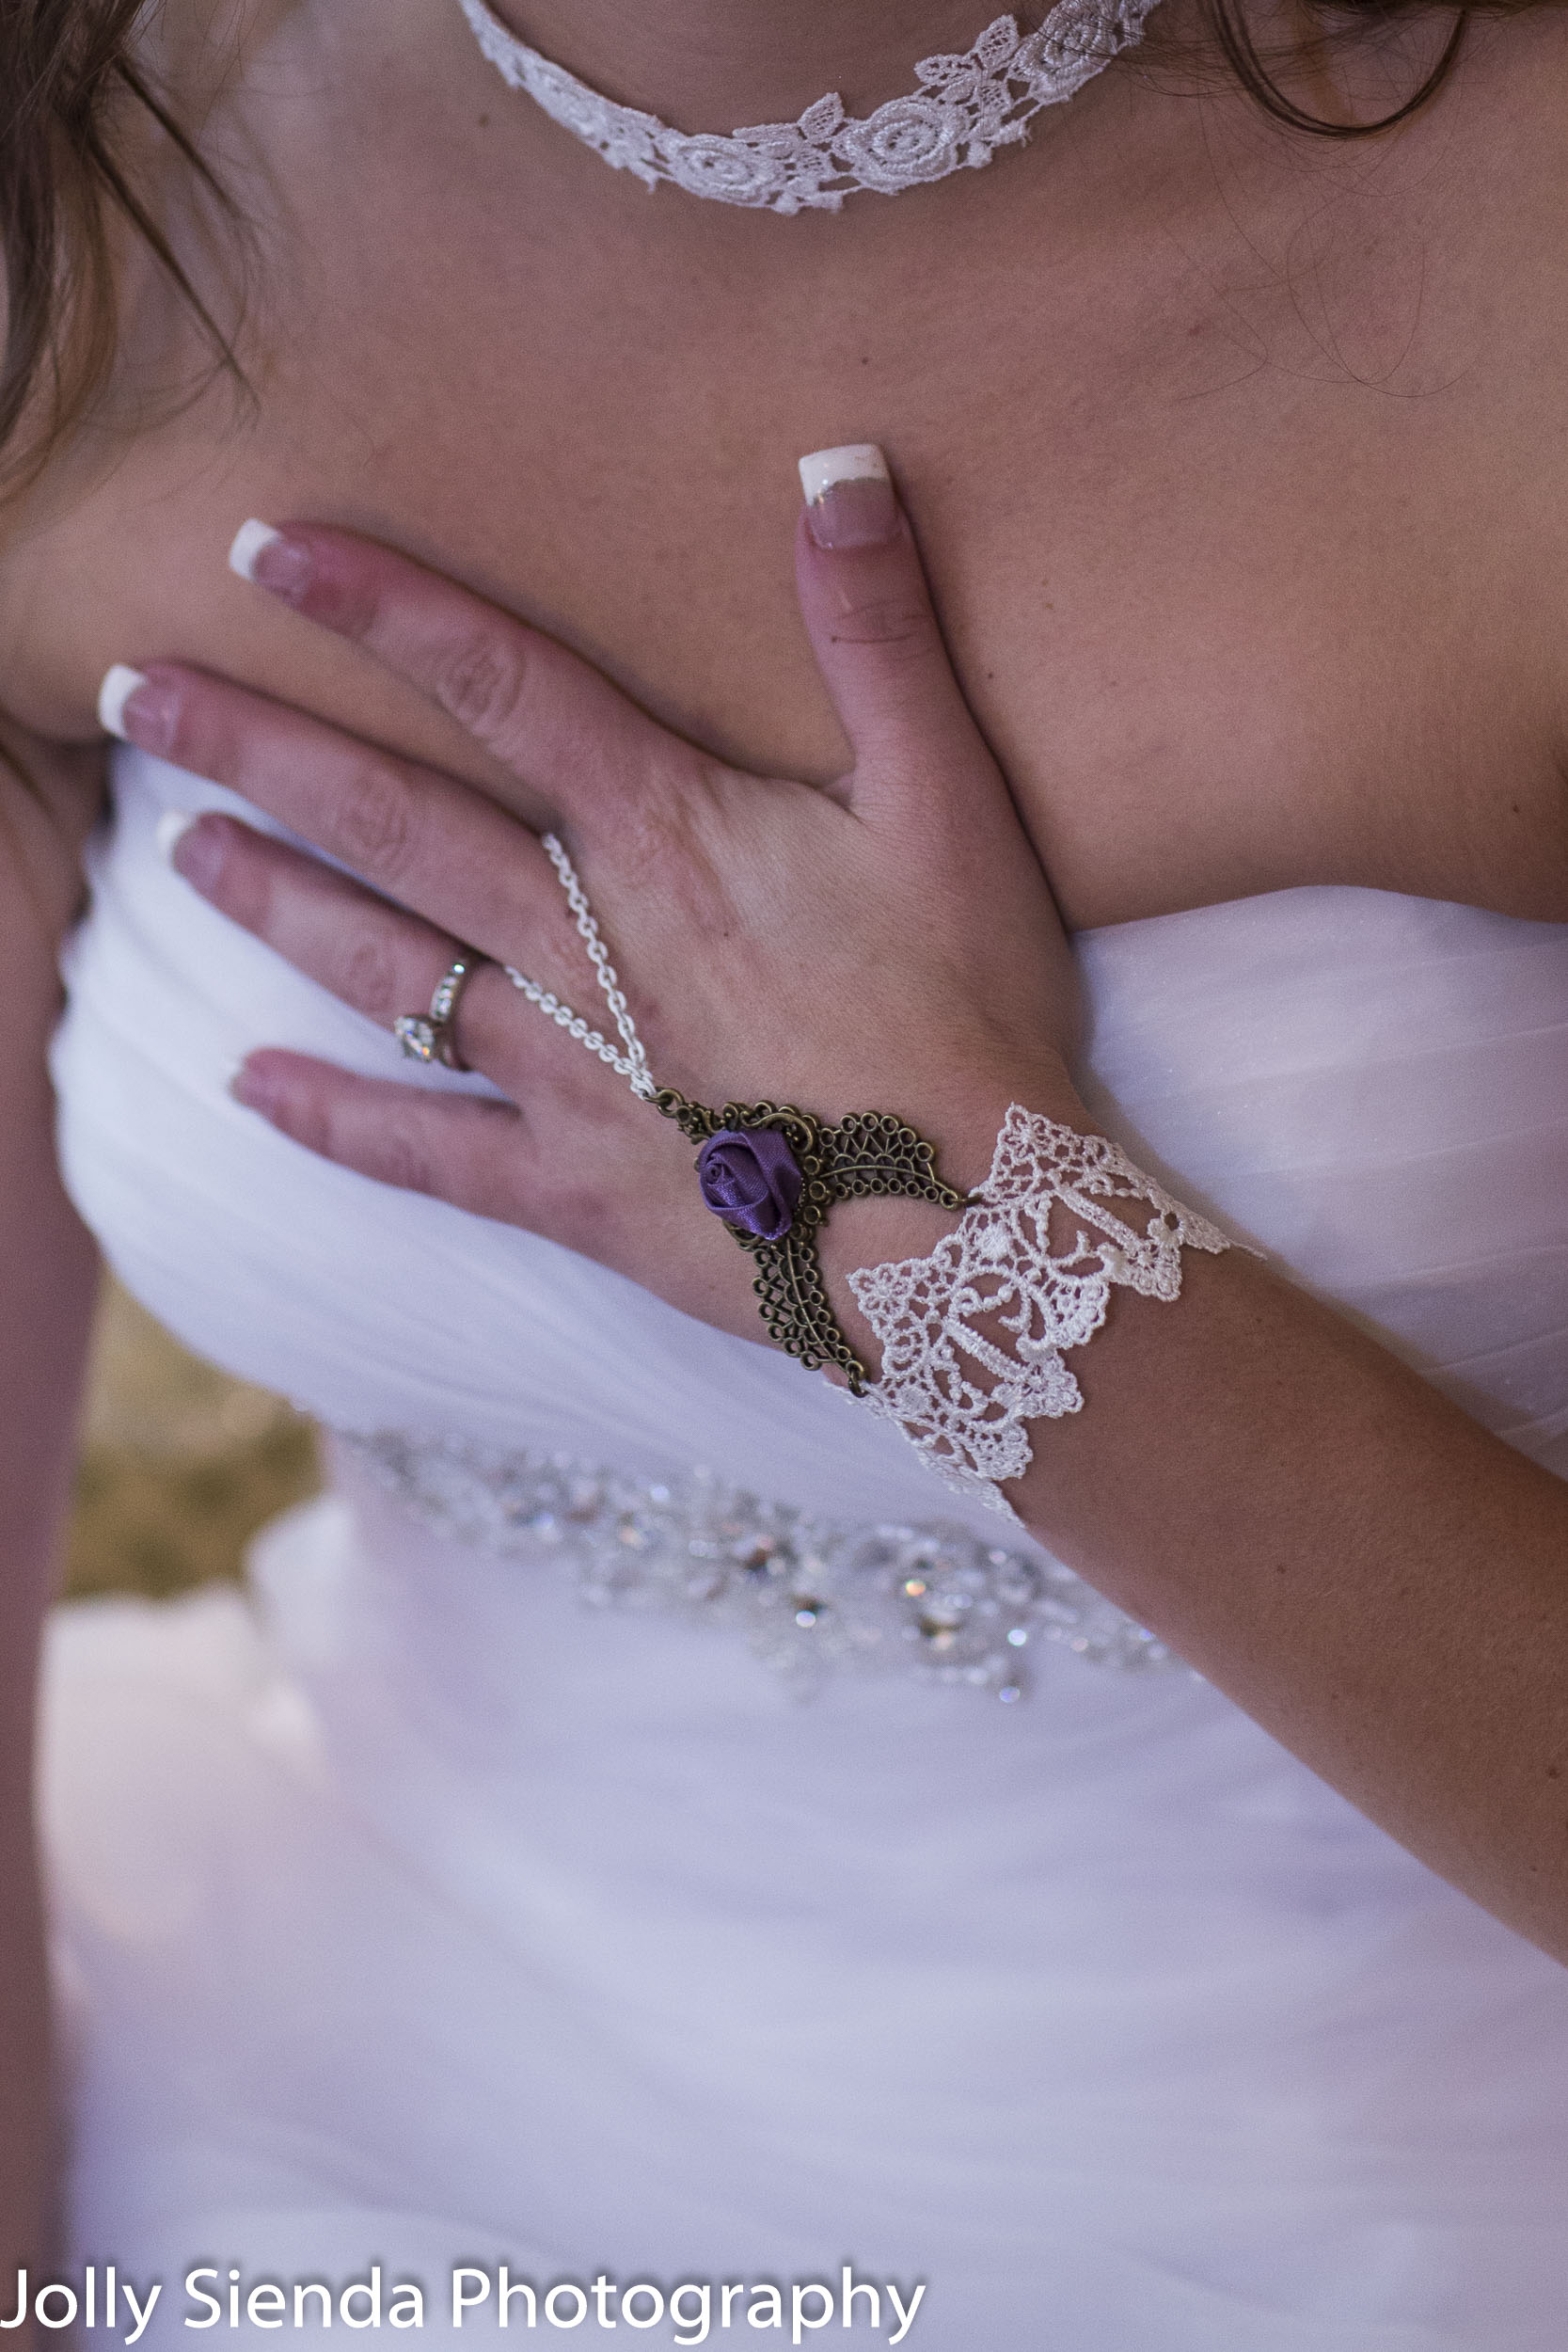 Wedding photogaphy with the brides wedding ring and lace